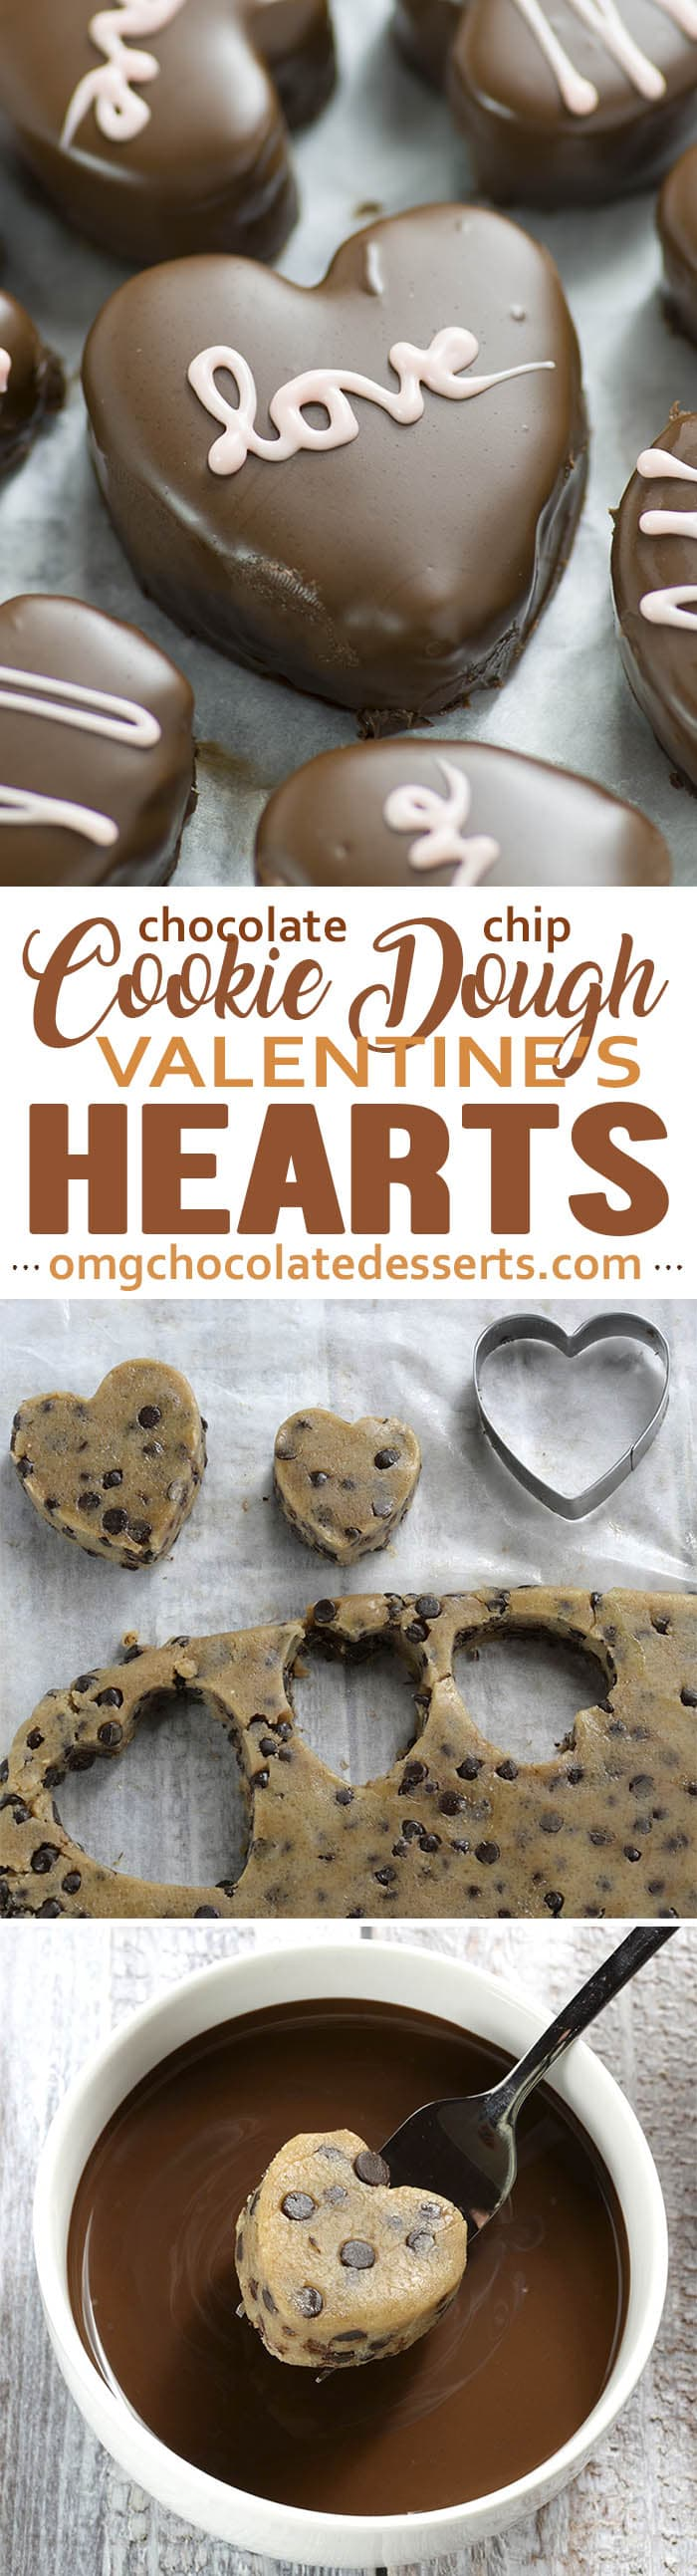 Chocolate Chip Cookie Dough Valentine S Hearts Omg Chocolate Desserts